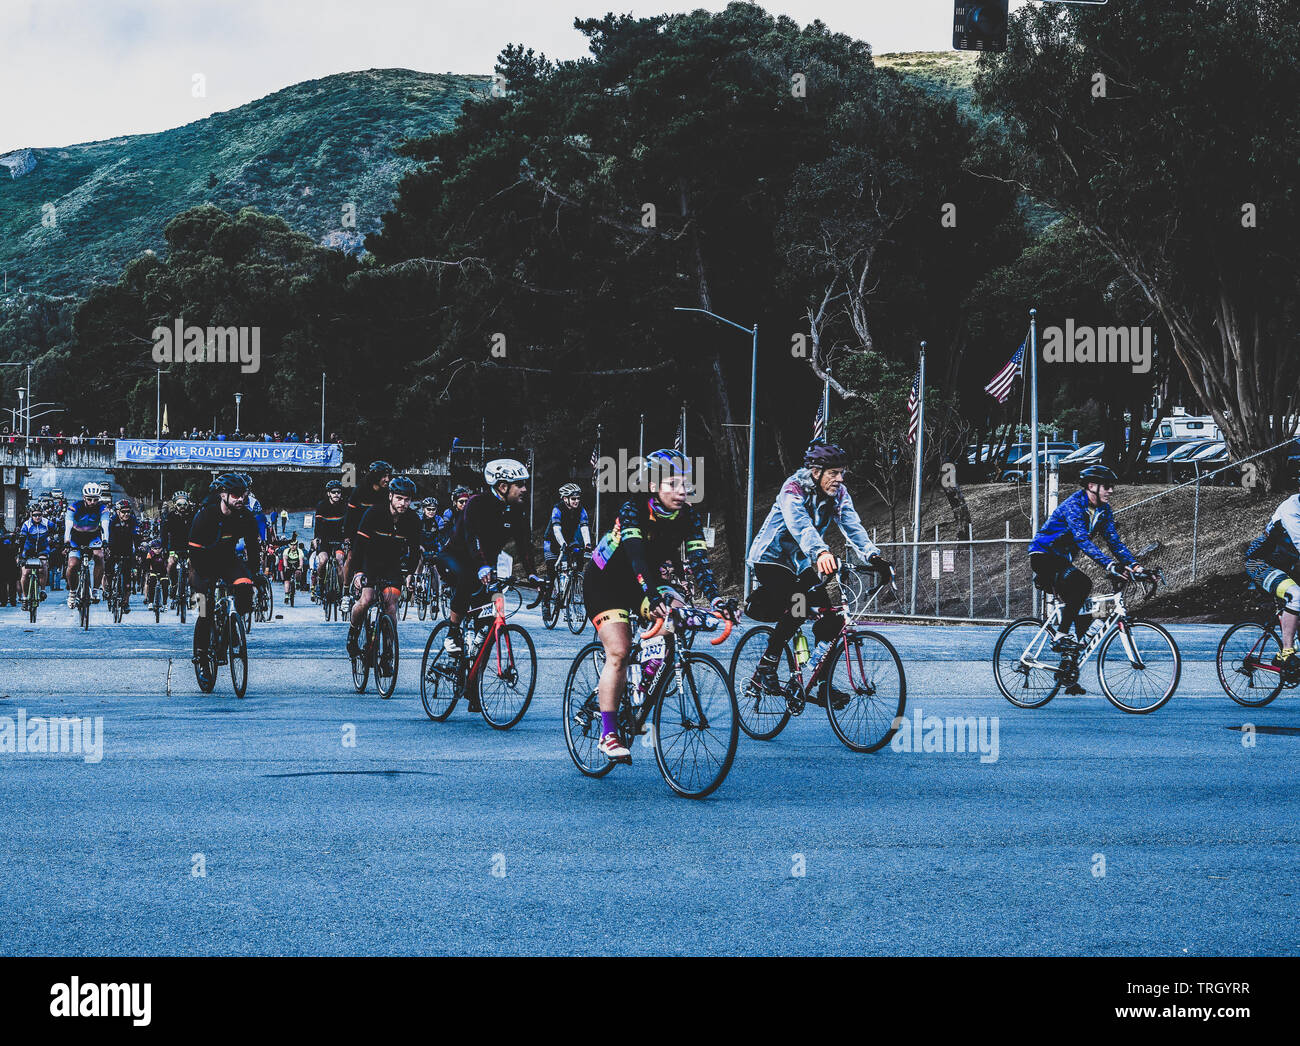 San Francisco, USA. 2nd June, 2019. Cyclists leave the Cow Palace at the start of the AIDS/Lifecycle just as the sun first reaches the hilltops above. Stock Photo